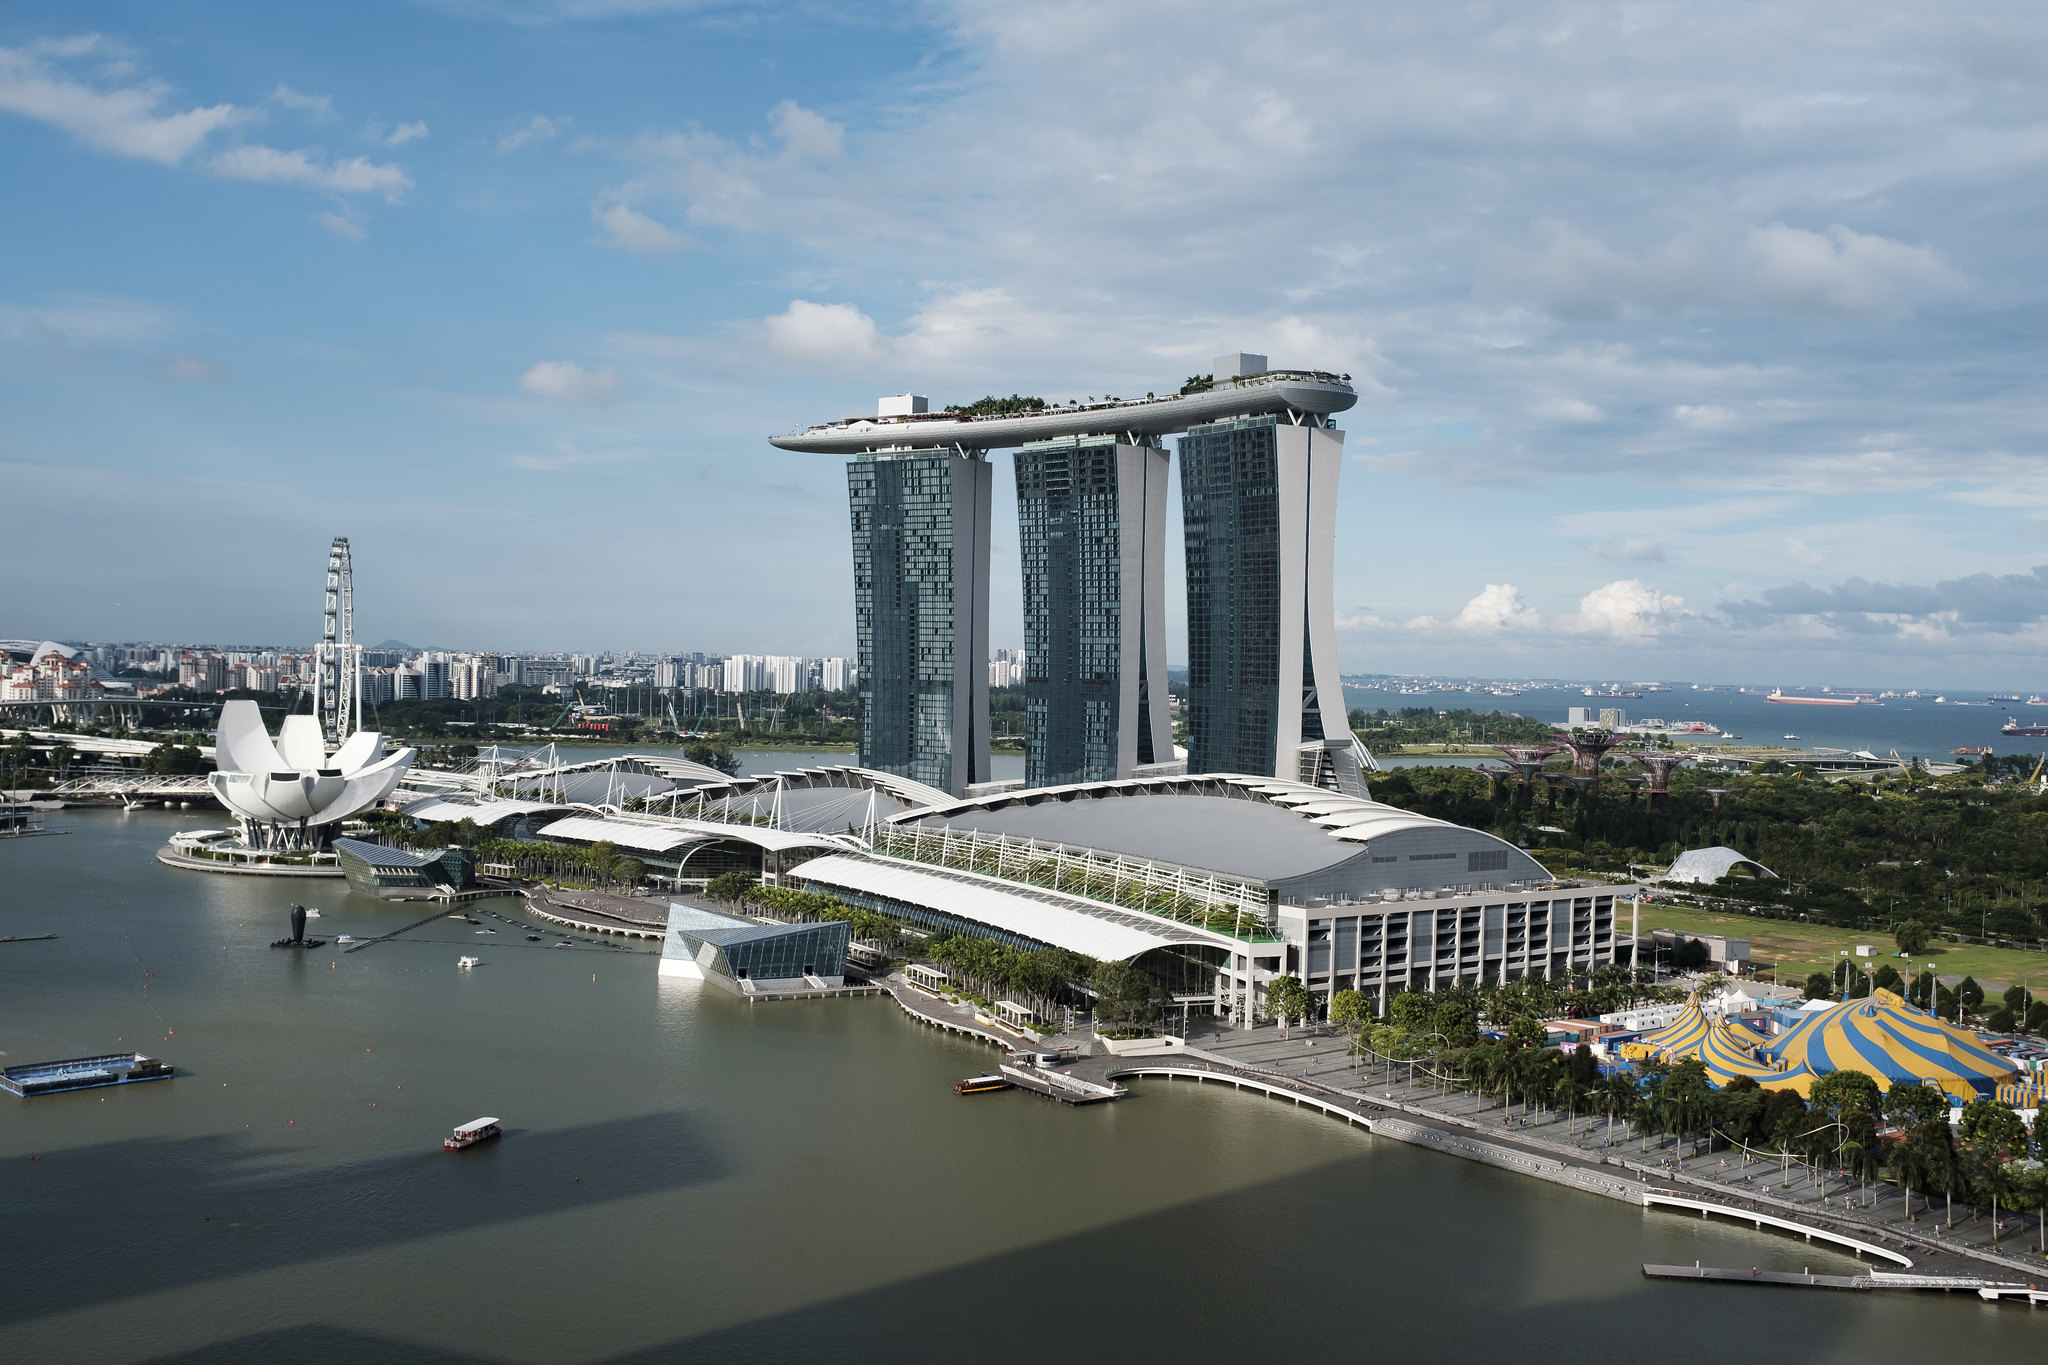 A photo of the Marina Bay Sands